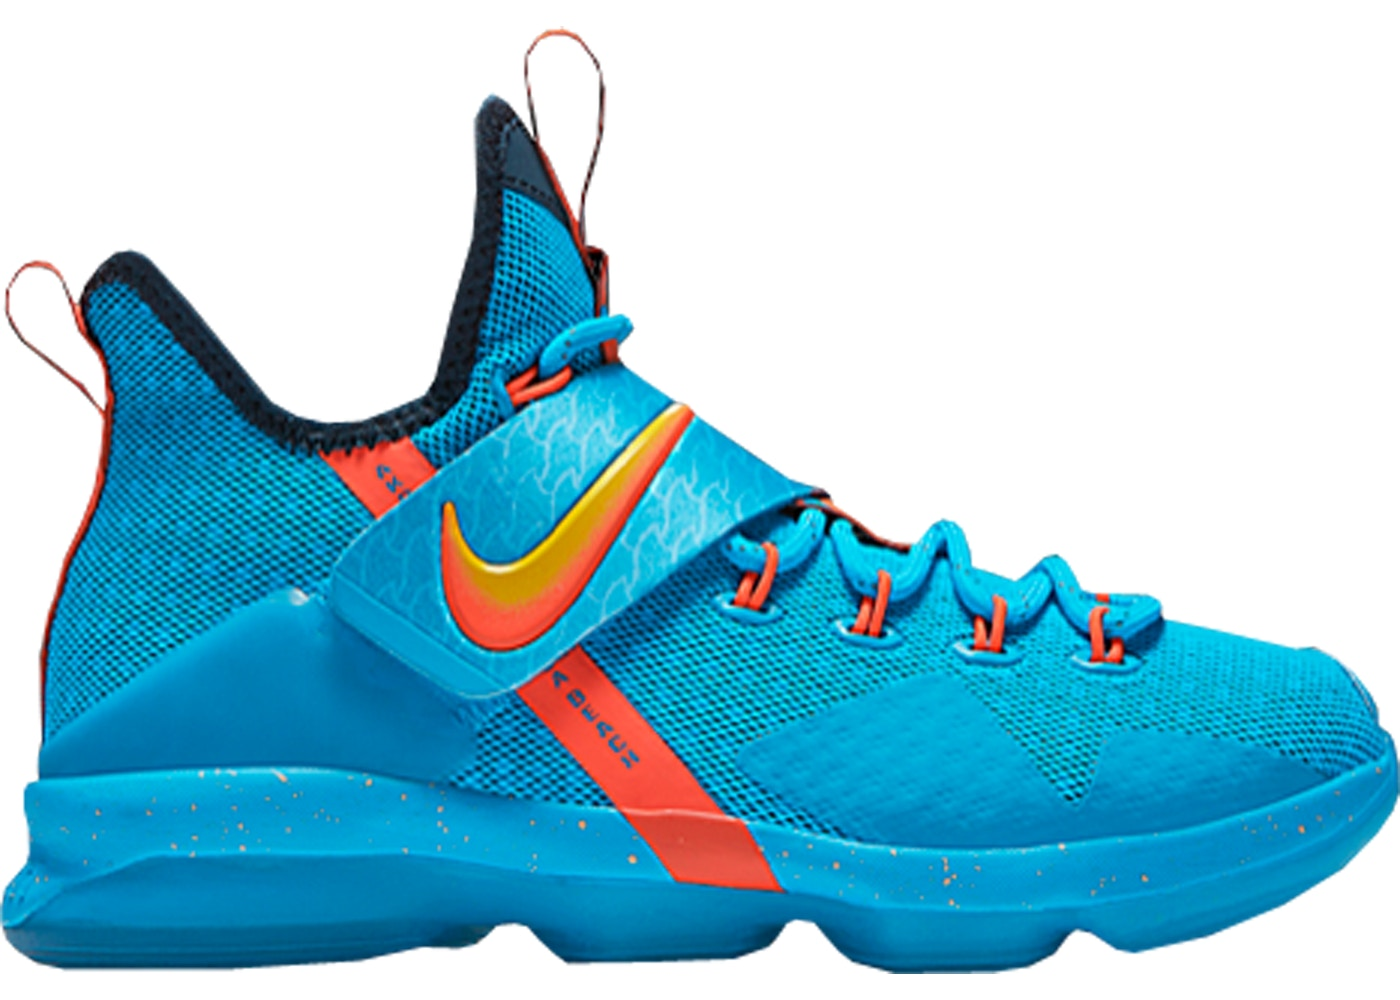 buy online ec036 66722 Nike LeBron 14 Shoes - Average Sale Price